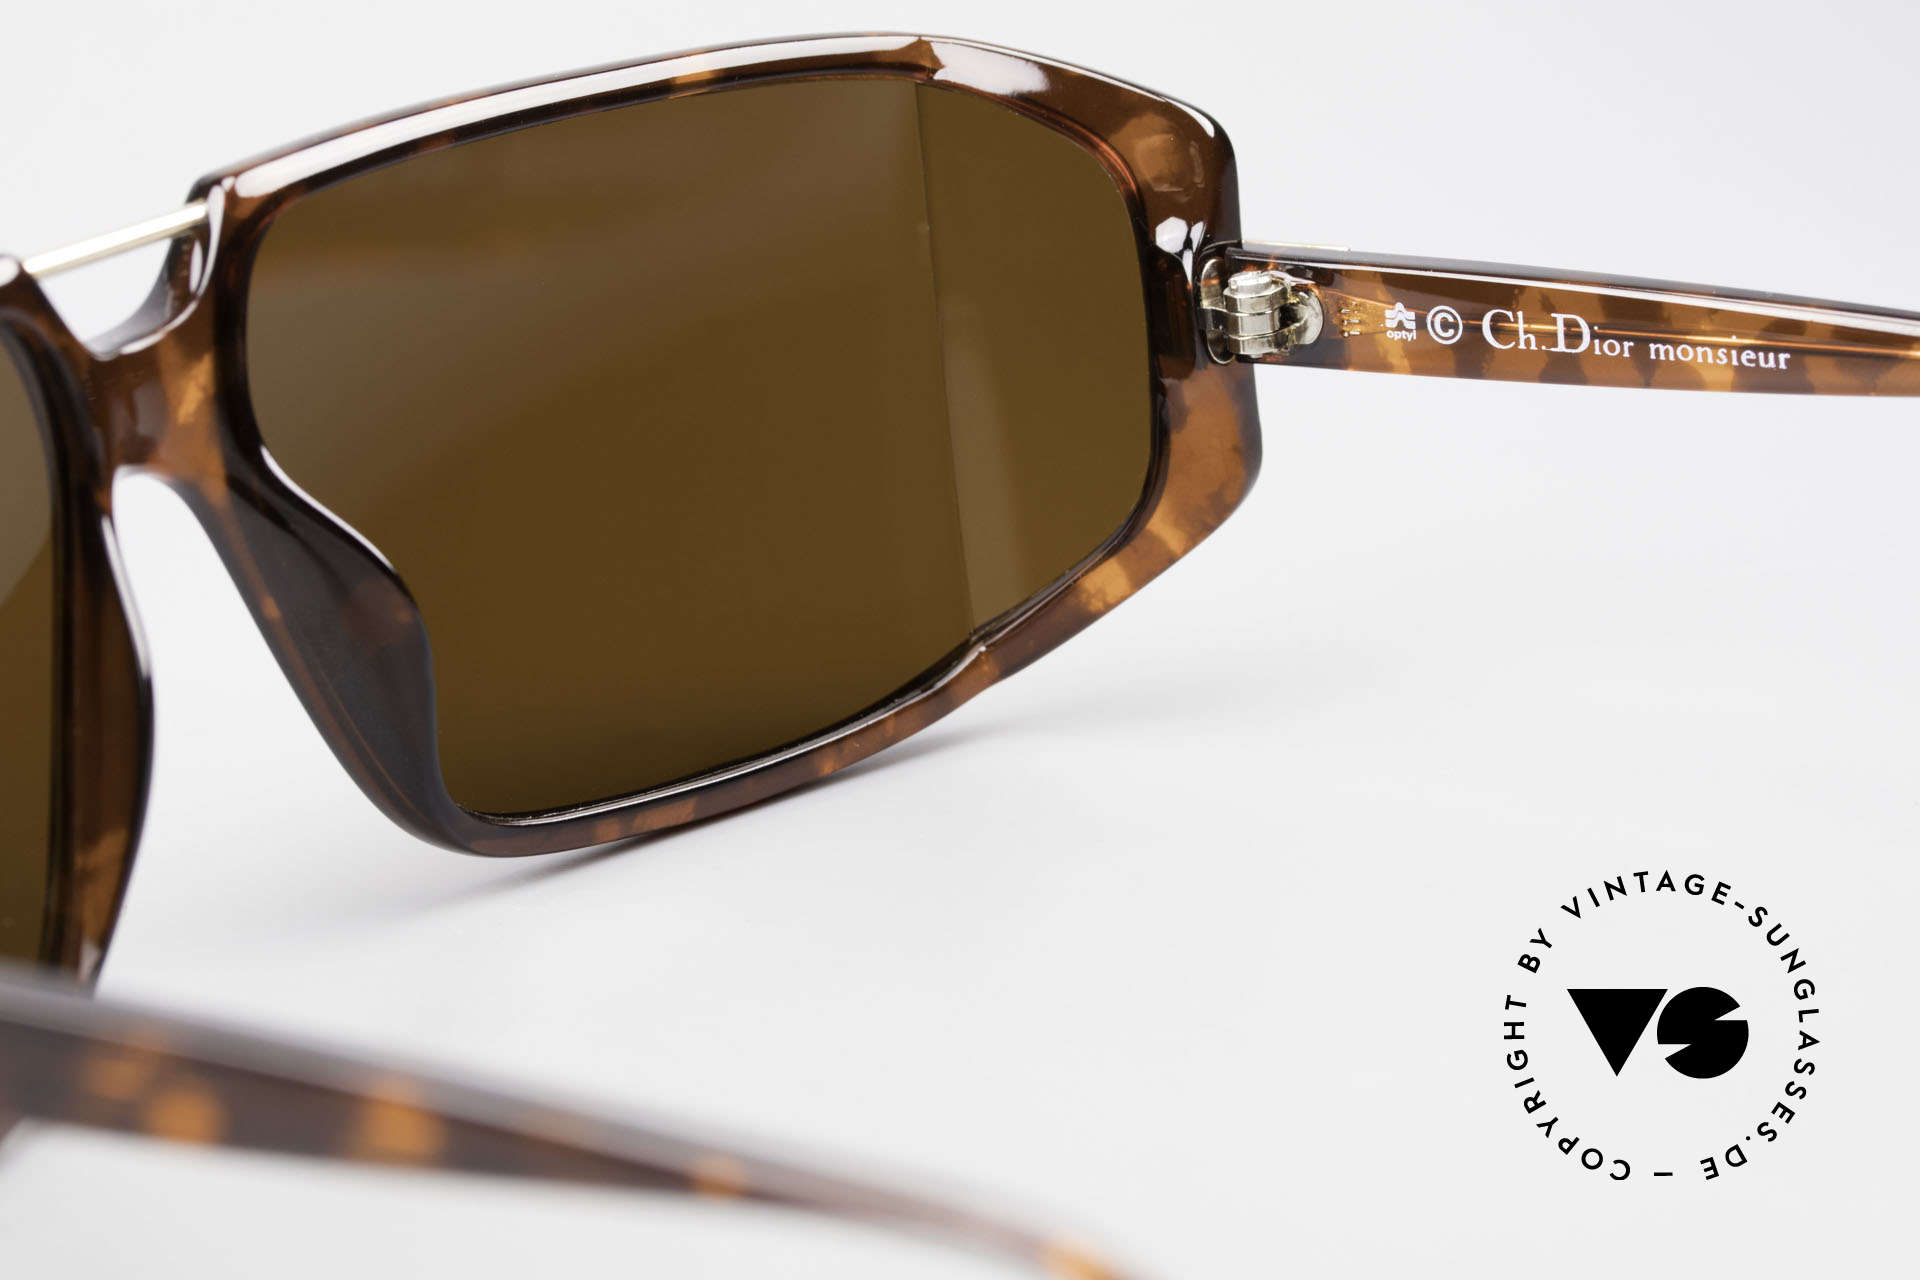 Christian Dior 2440 80's Monsieur Men's Shades, NO retro sunglasses, but an app. 30 years old unicum, Made for Men